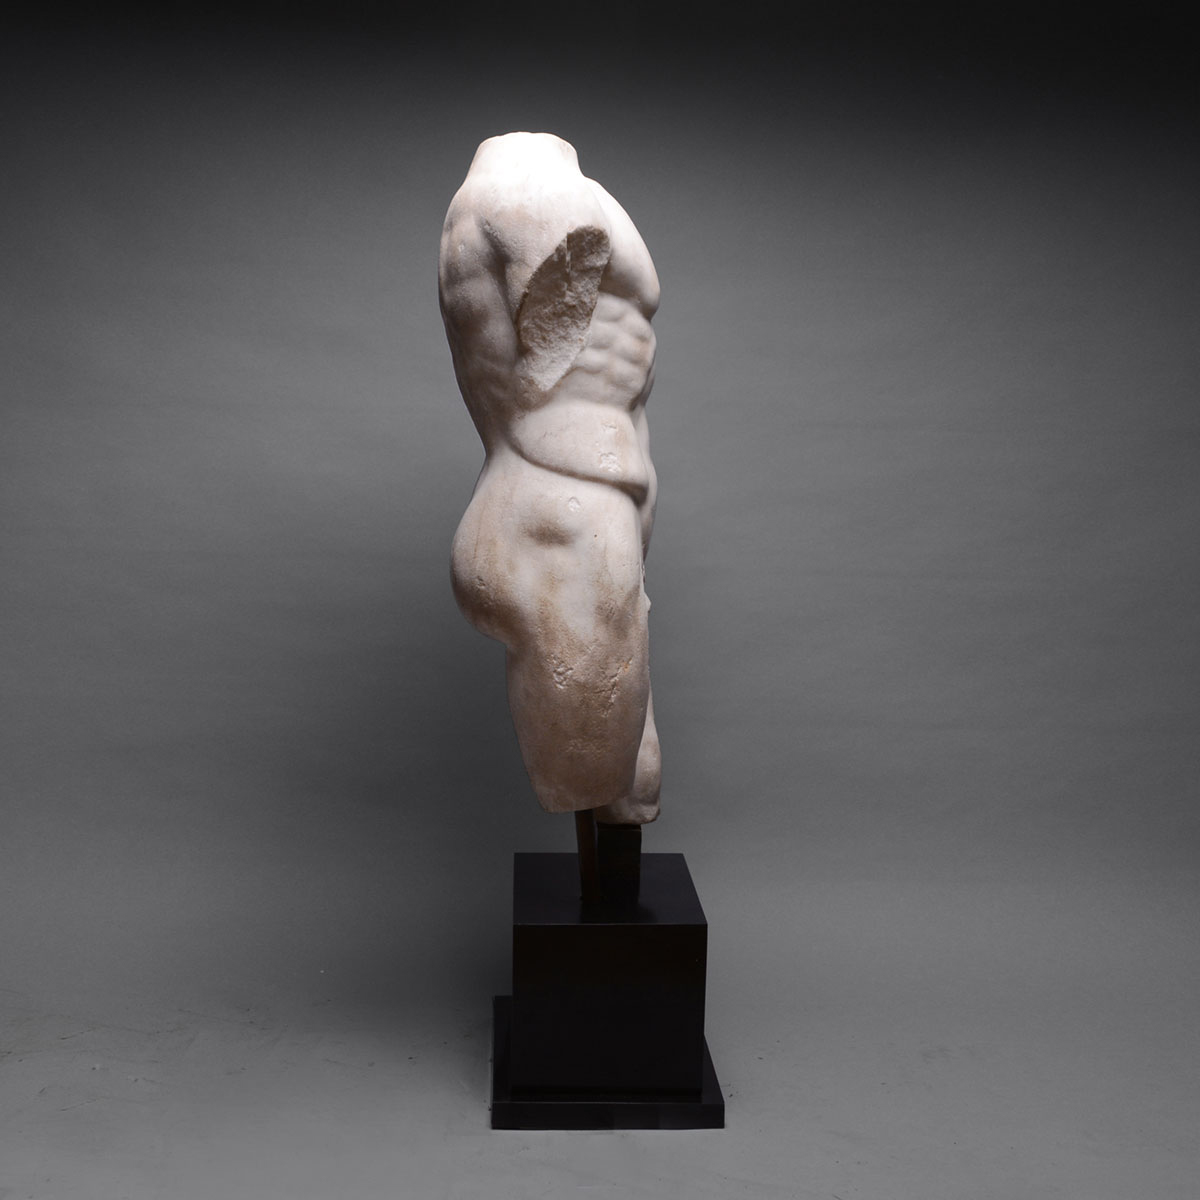 Roman Marble Torso of a Nude Male - Barakat Gallery Store